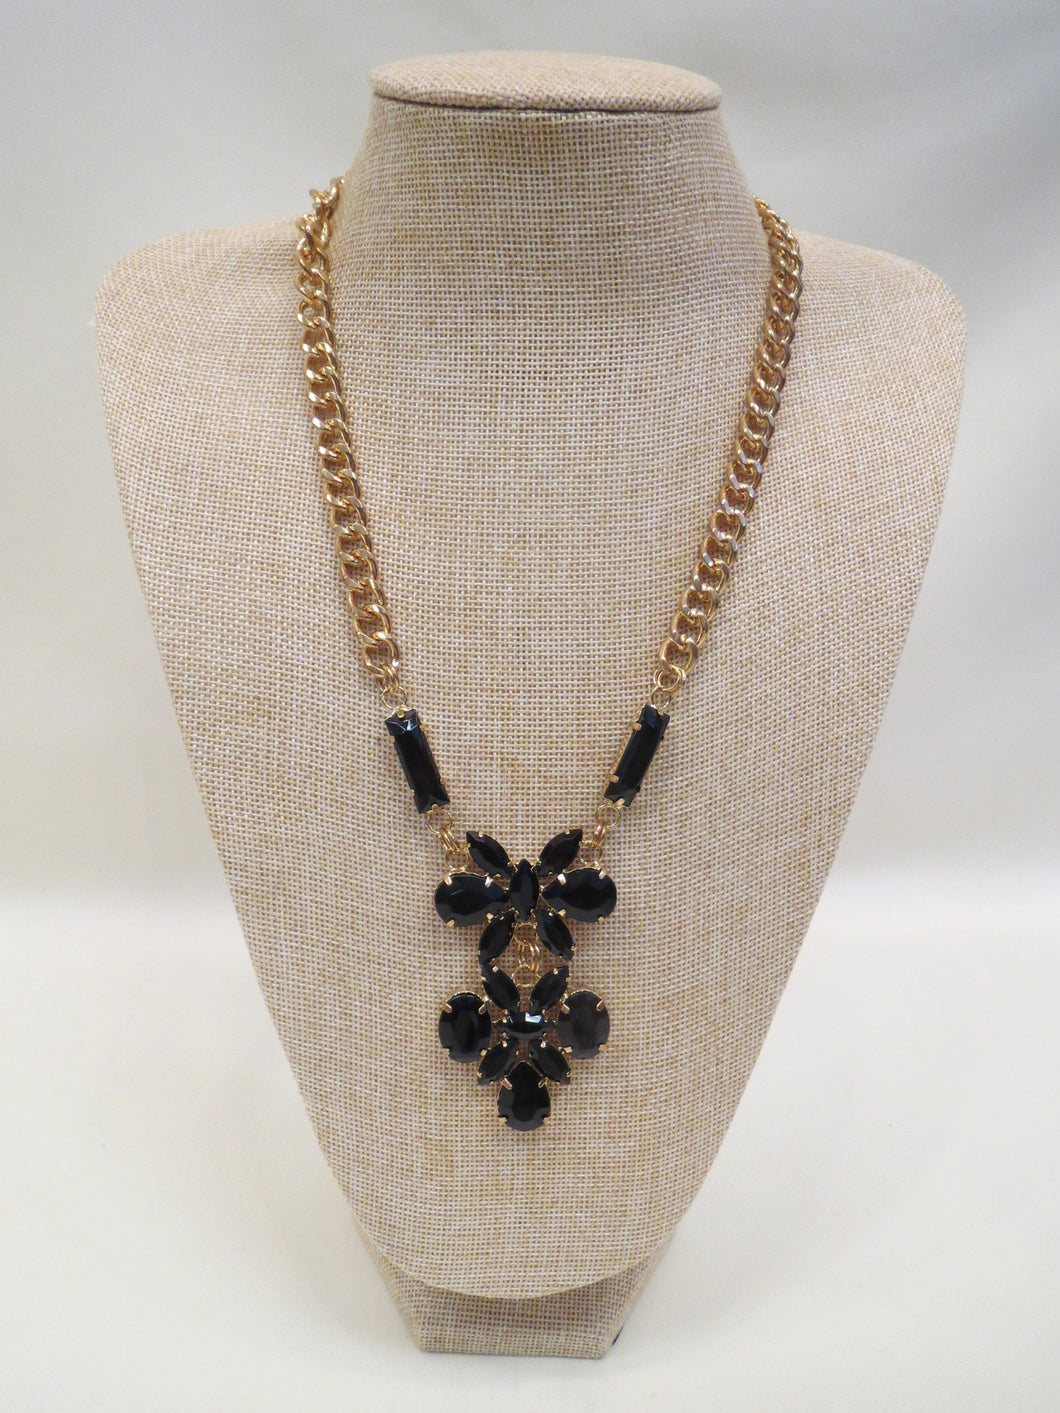 Ado Gold Chain Necklace With Black Stone Design All Dec D Out